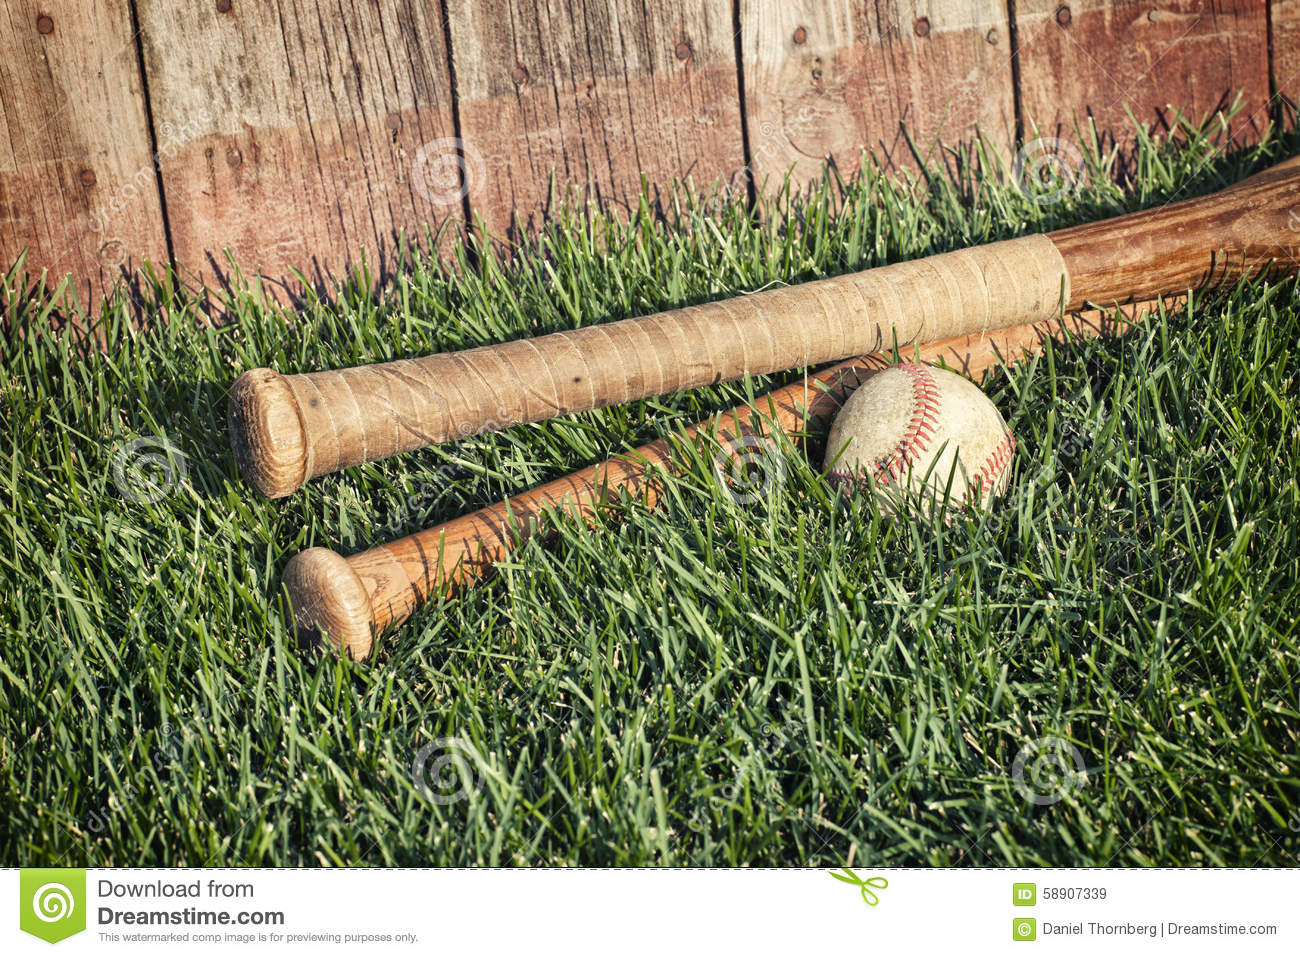 Vintage Photo Of Grass: Vintage Baseball And Bats On Grass Near Old Wooden Fence